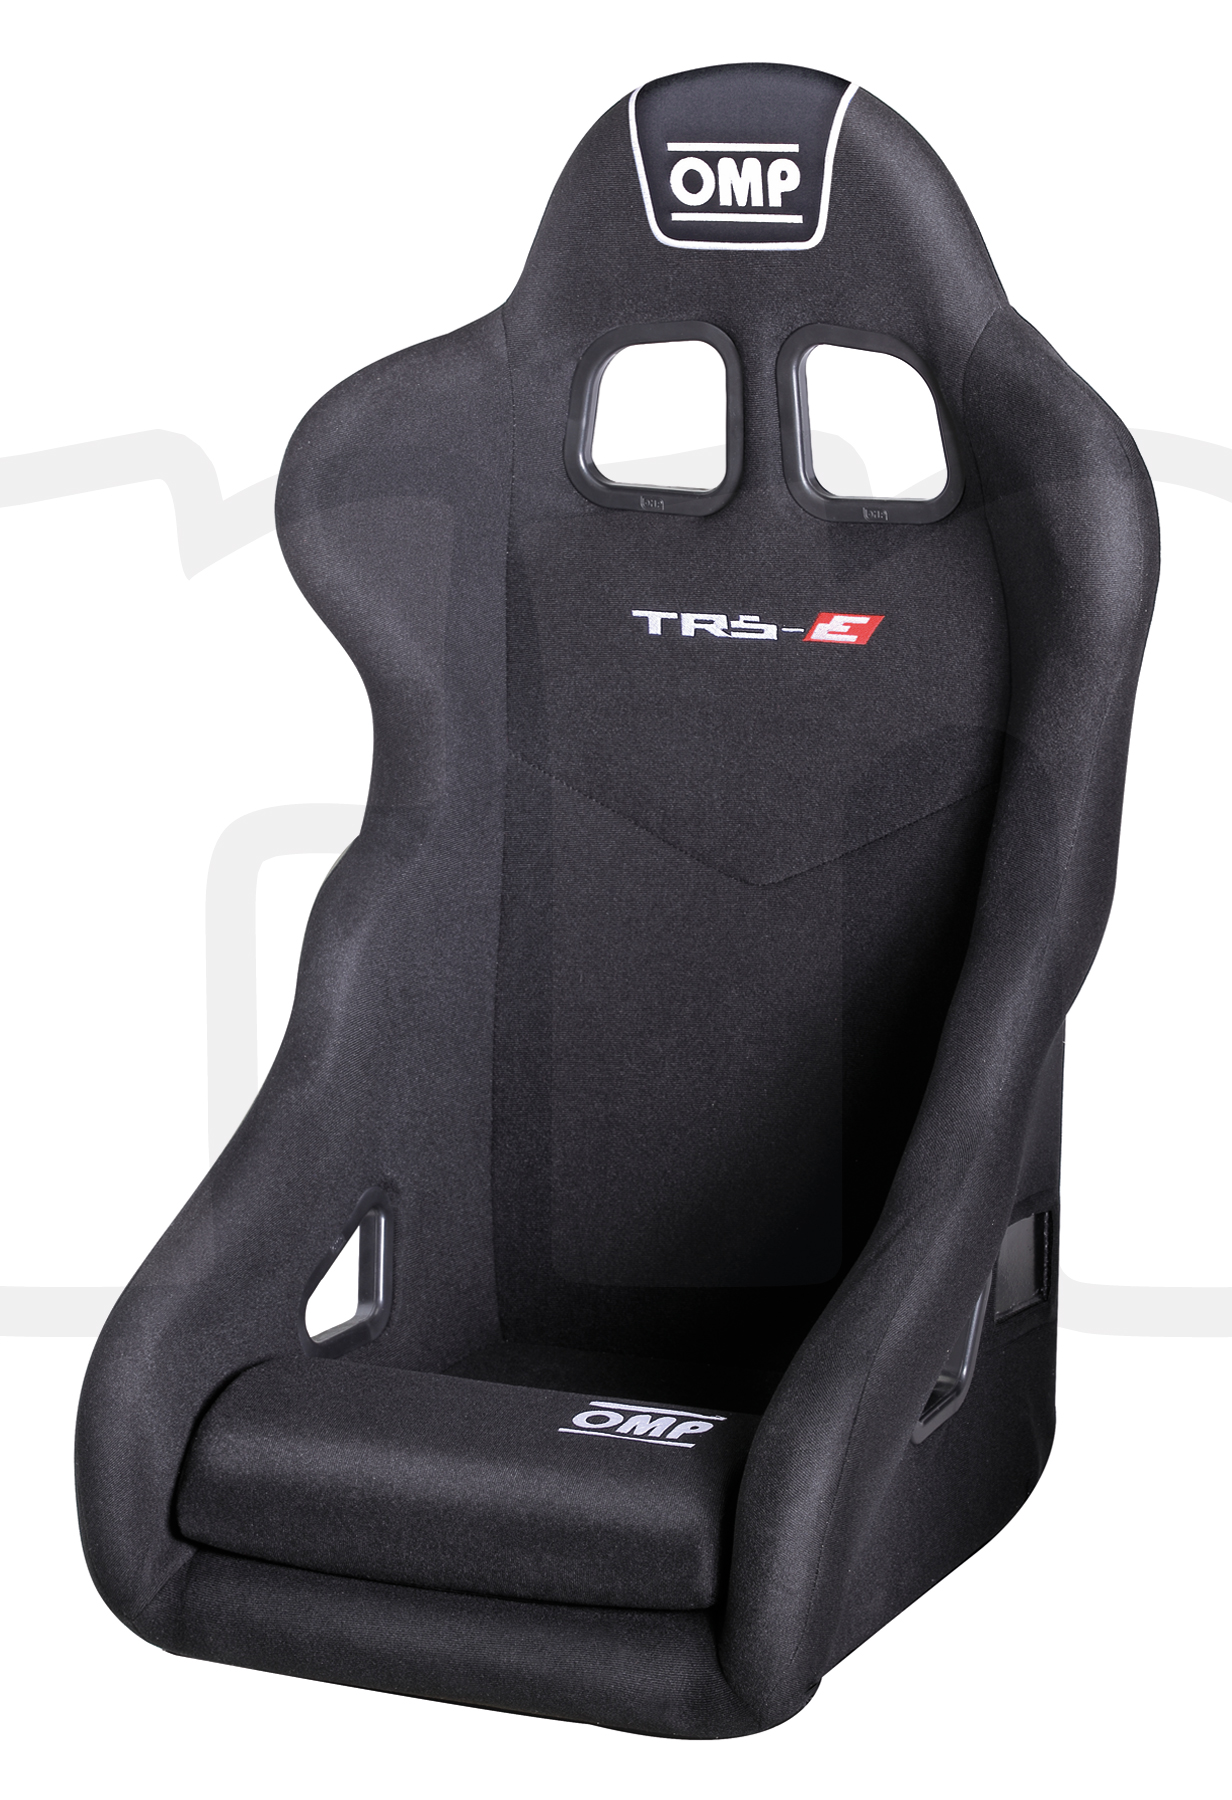 OMP Base Seat Cushion For Rally//Racing Seat In Black Universal Driver Accessory